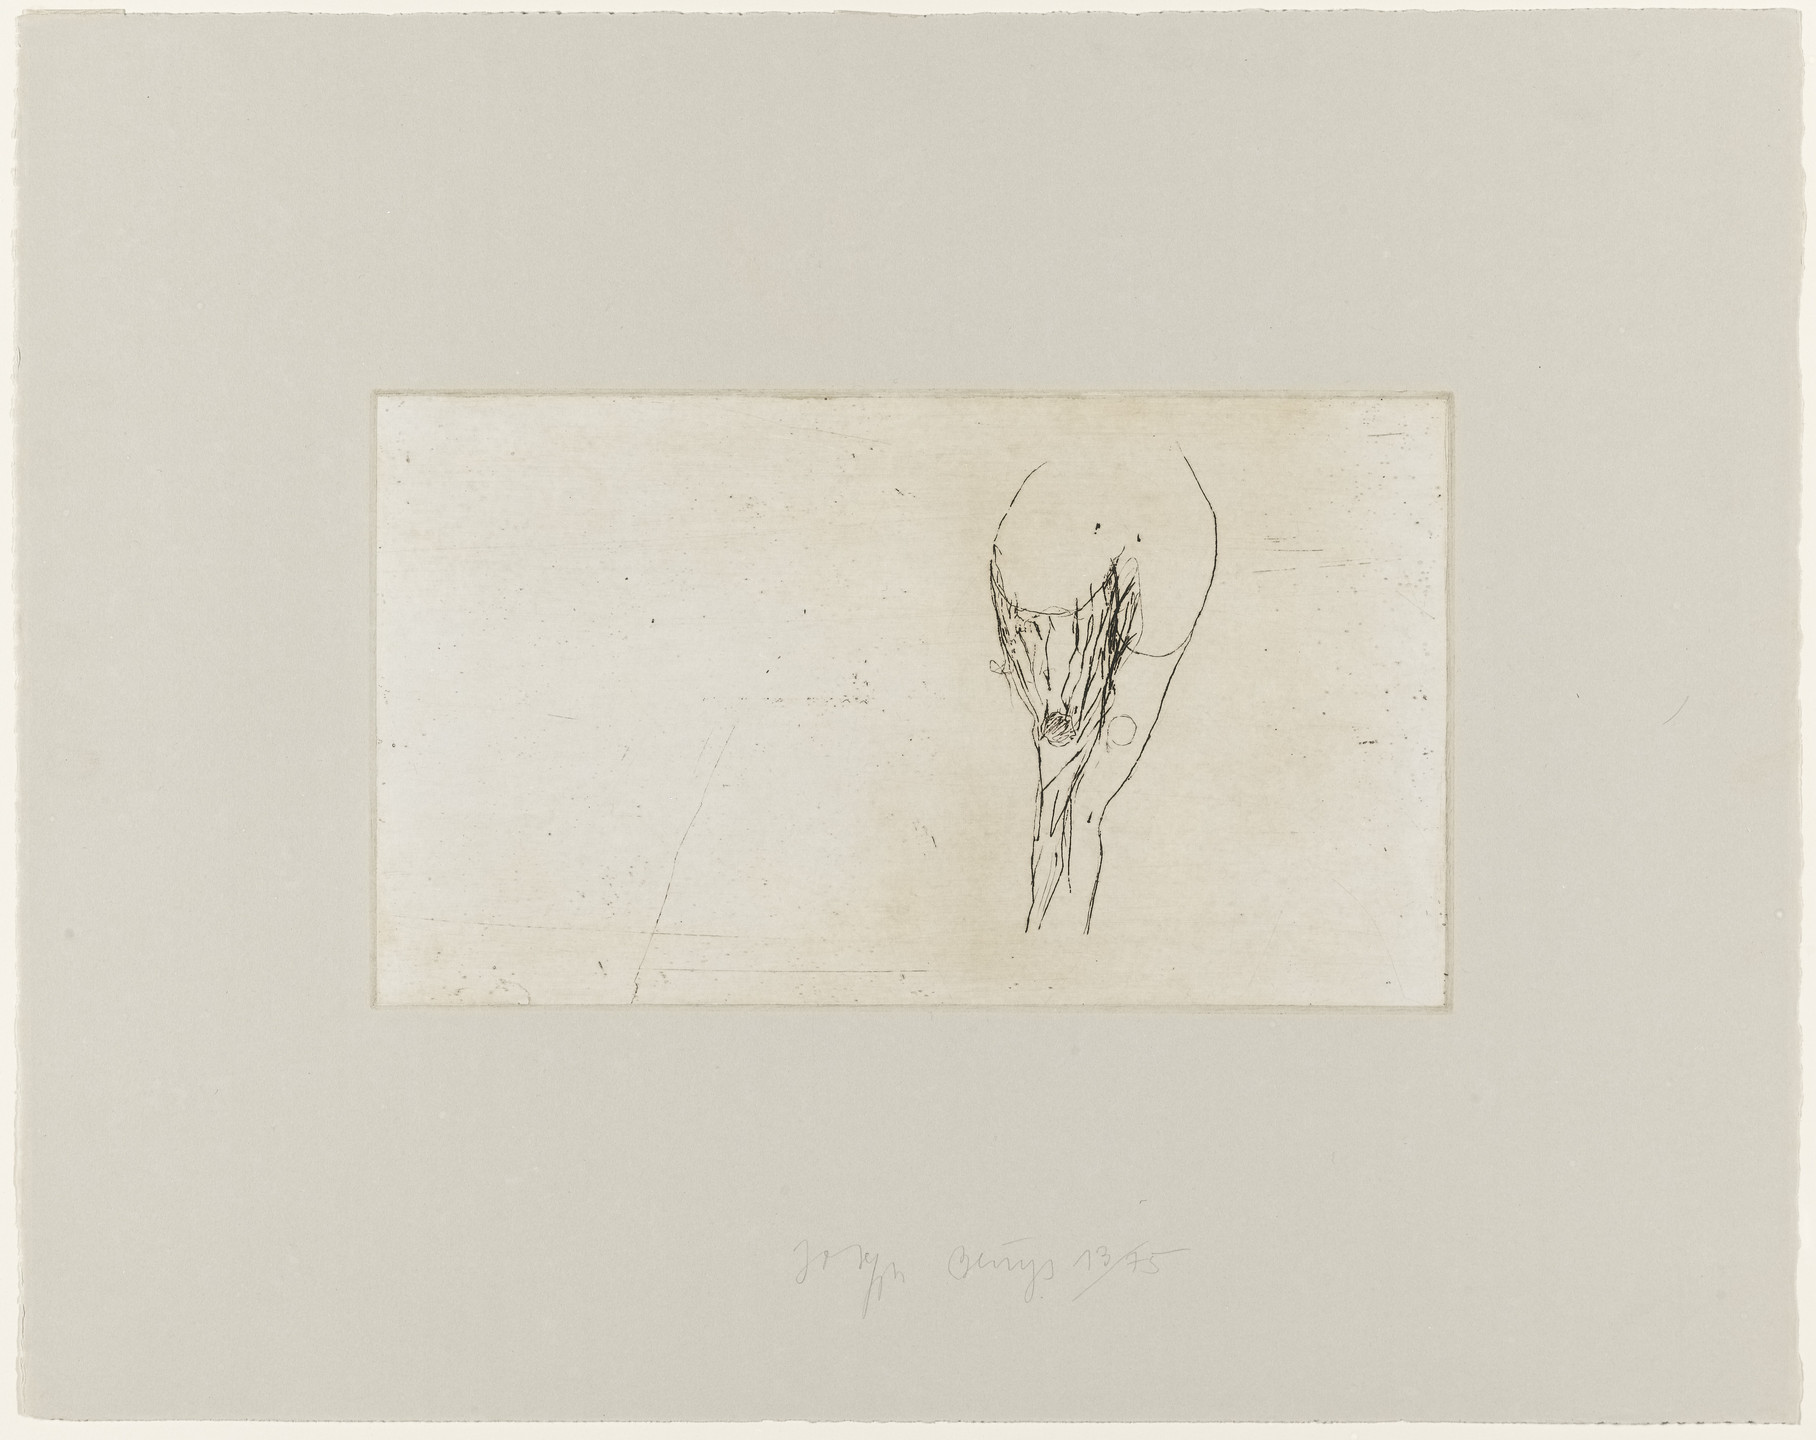 Joseph Beuys. Female Torso (Frauentorso). 1985